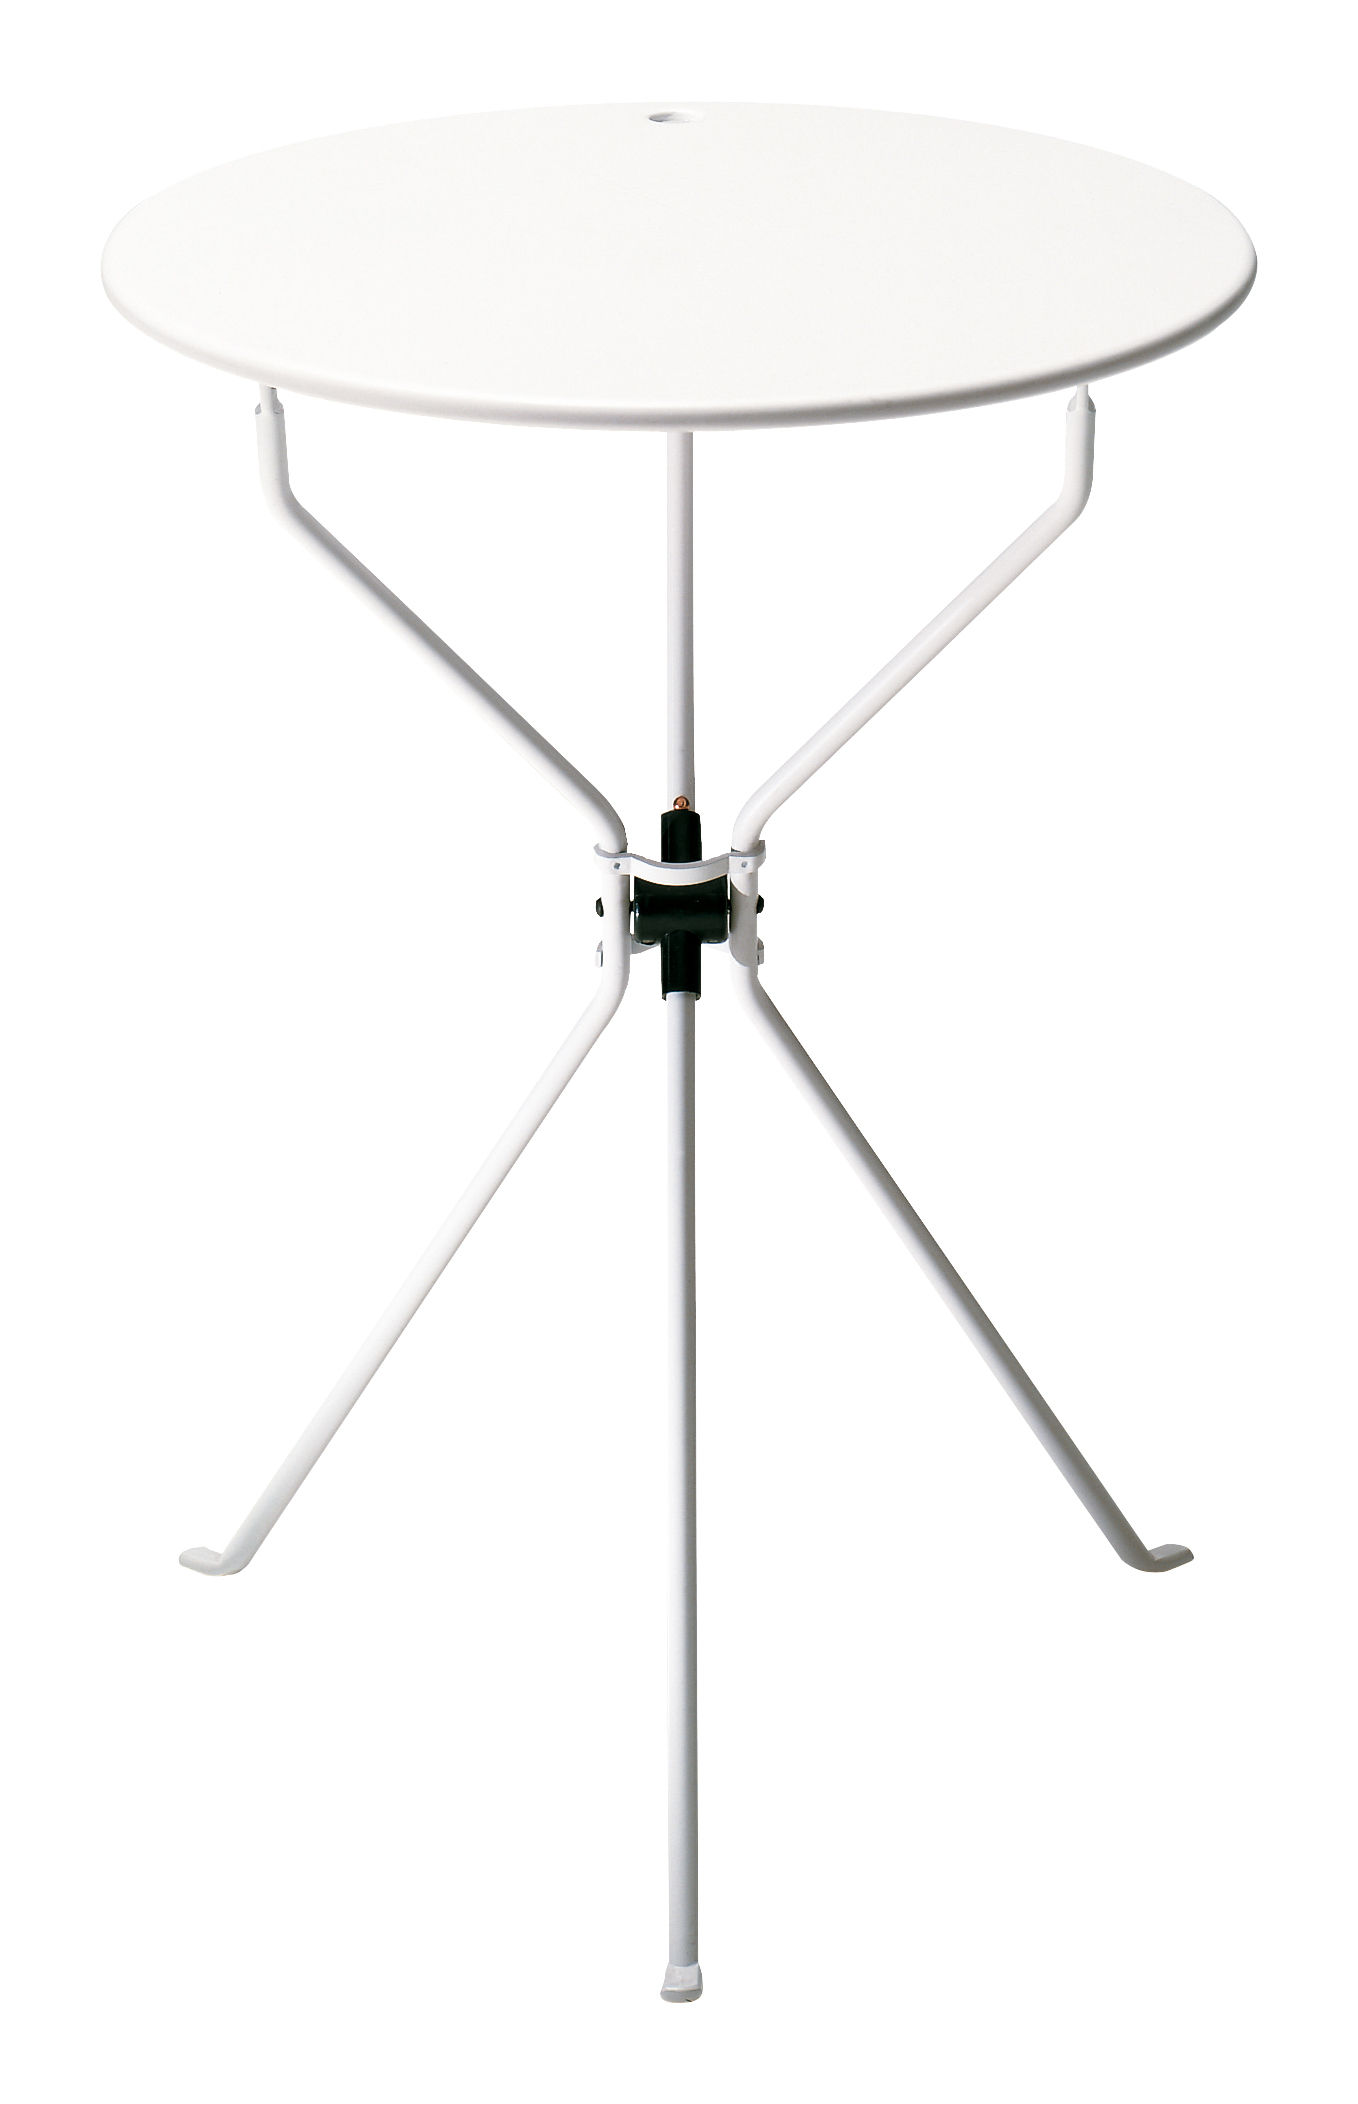 Mobilier - Tables basses - Table pliante Cumano / Ø 55 cm - Zanotta - Blanc - ABS, Acier verni